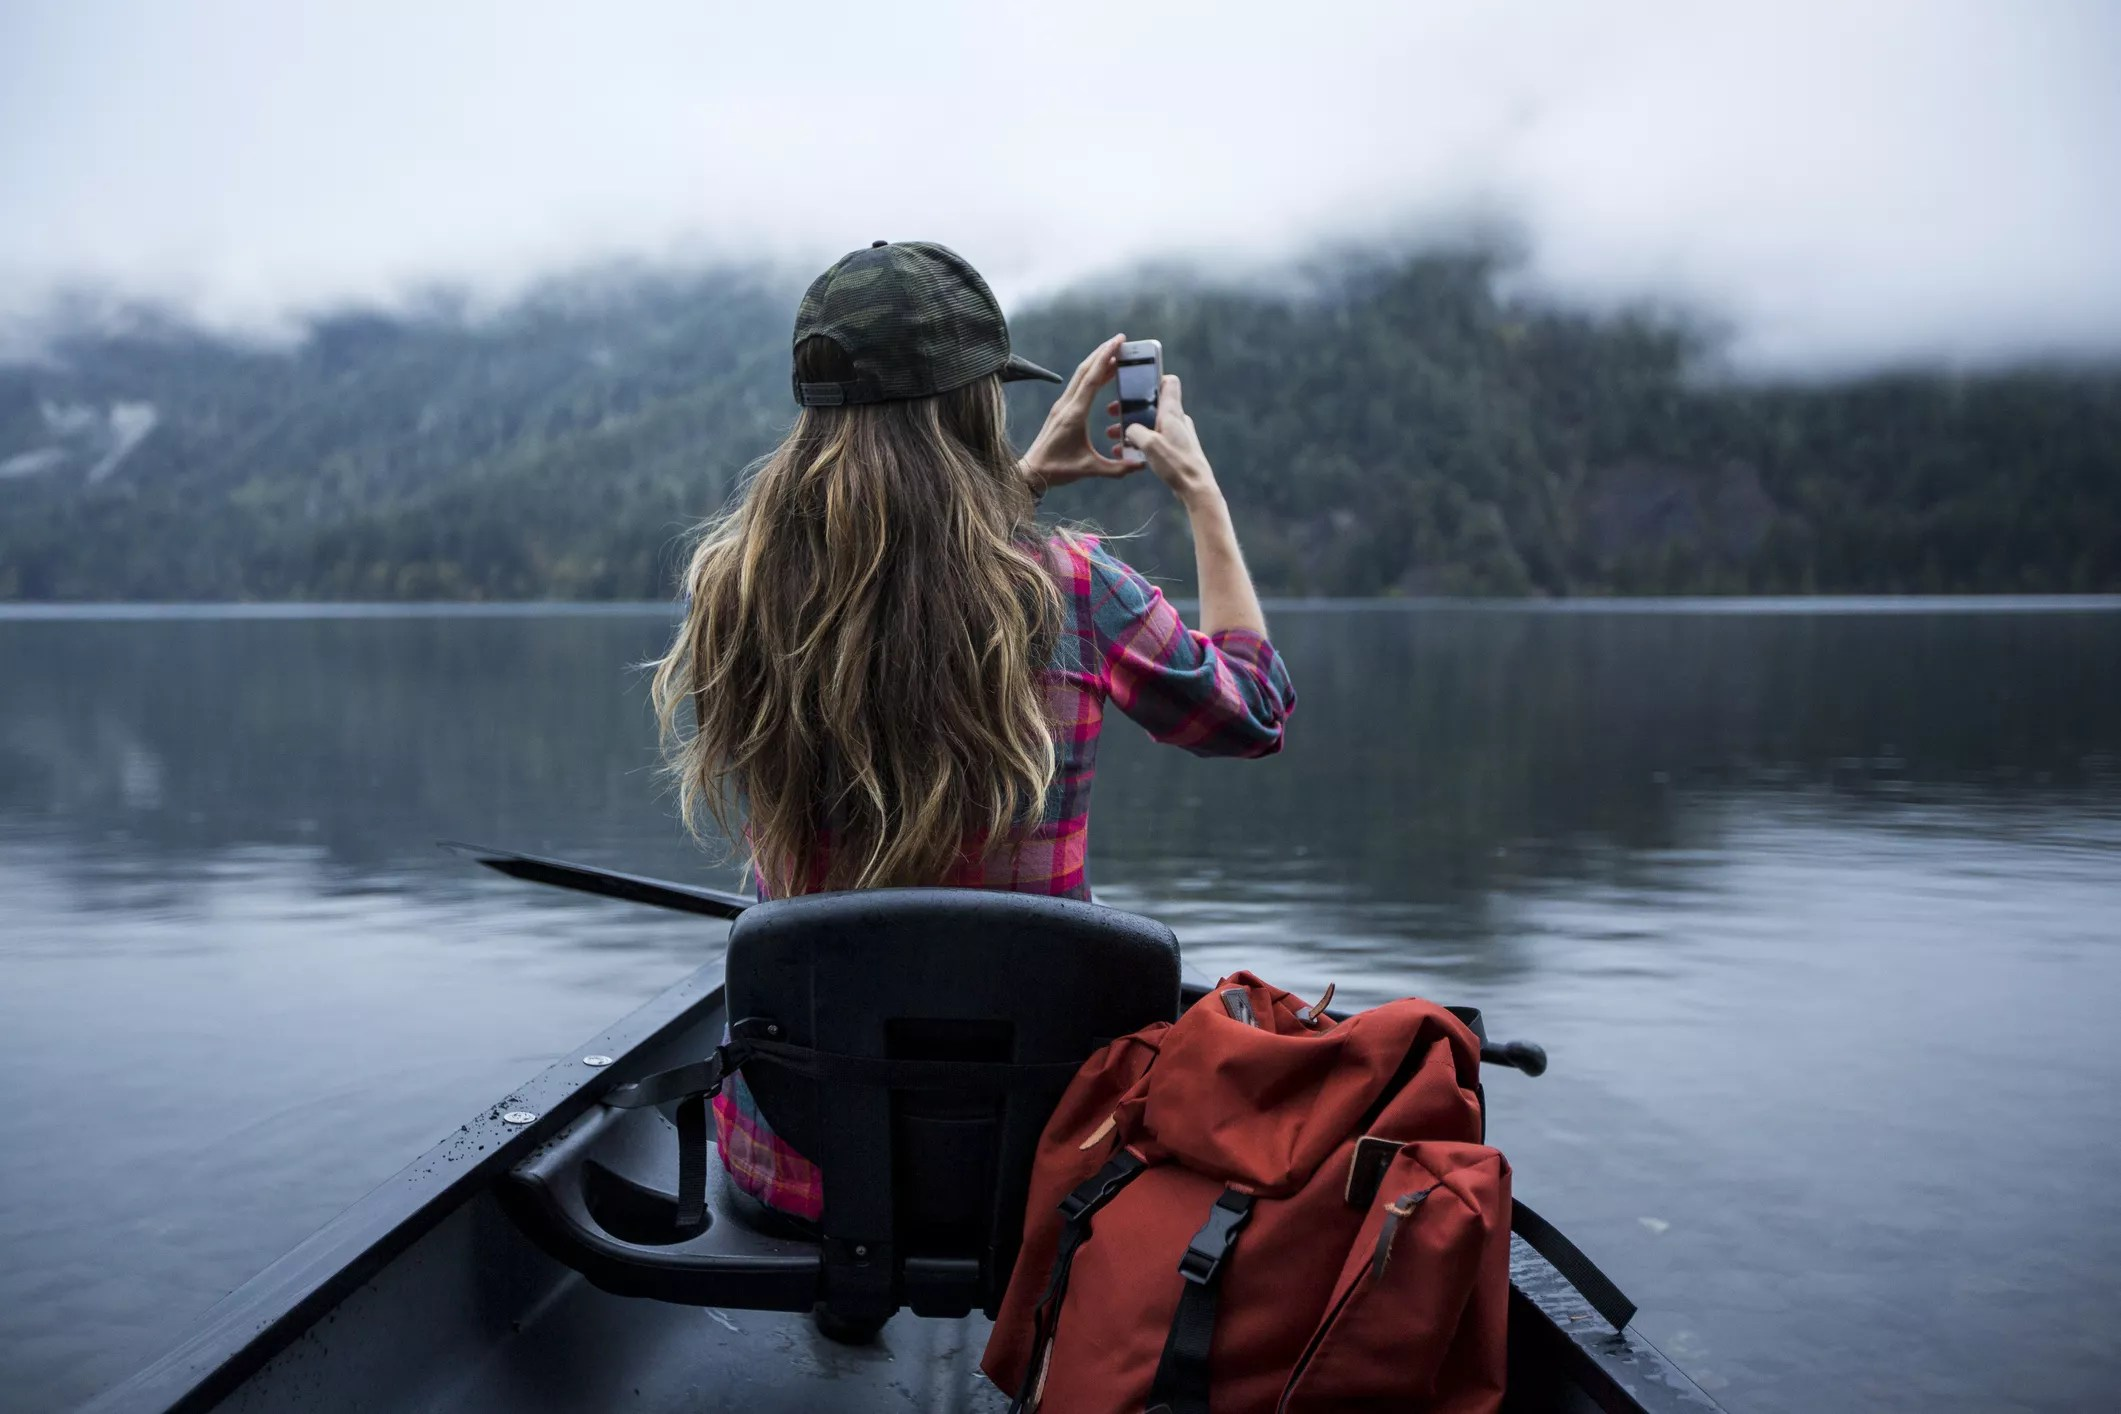 An image of a woman on a boat taking a photo of the surrounding water and landscape with her smartphone.